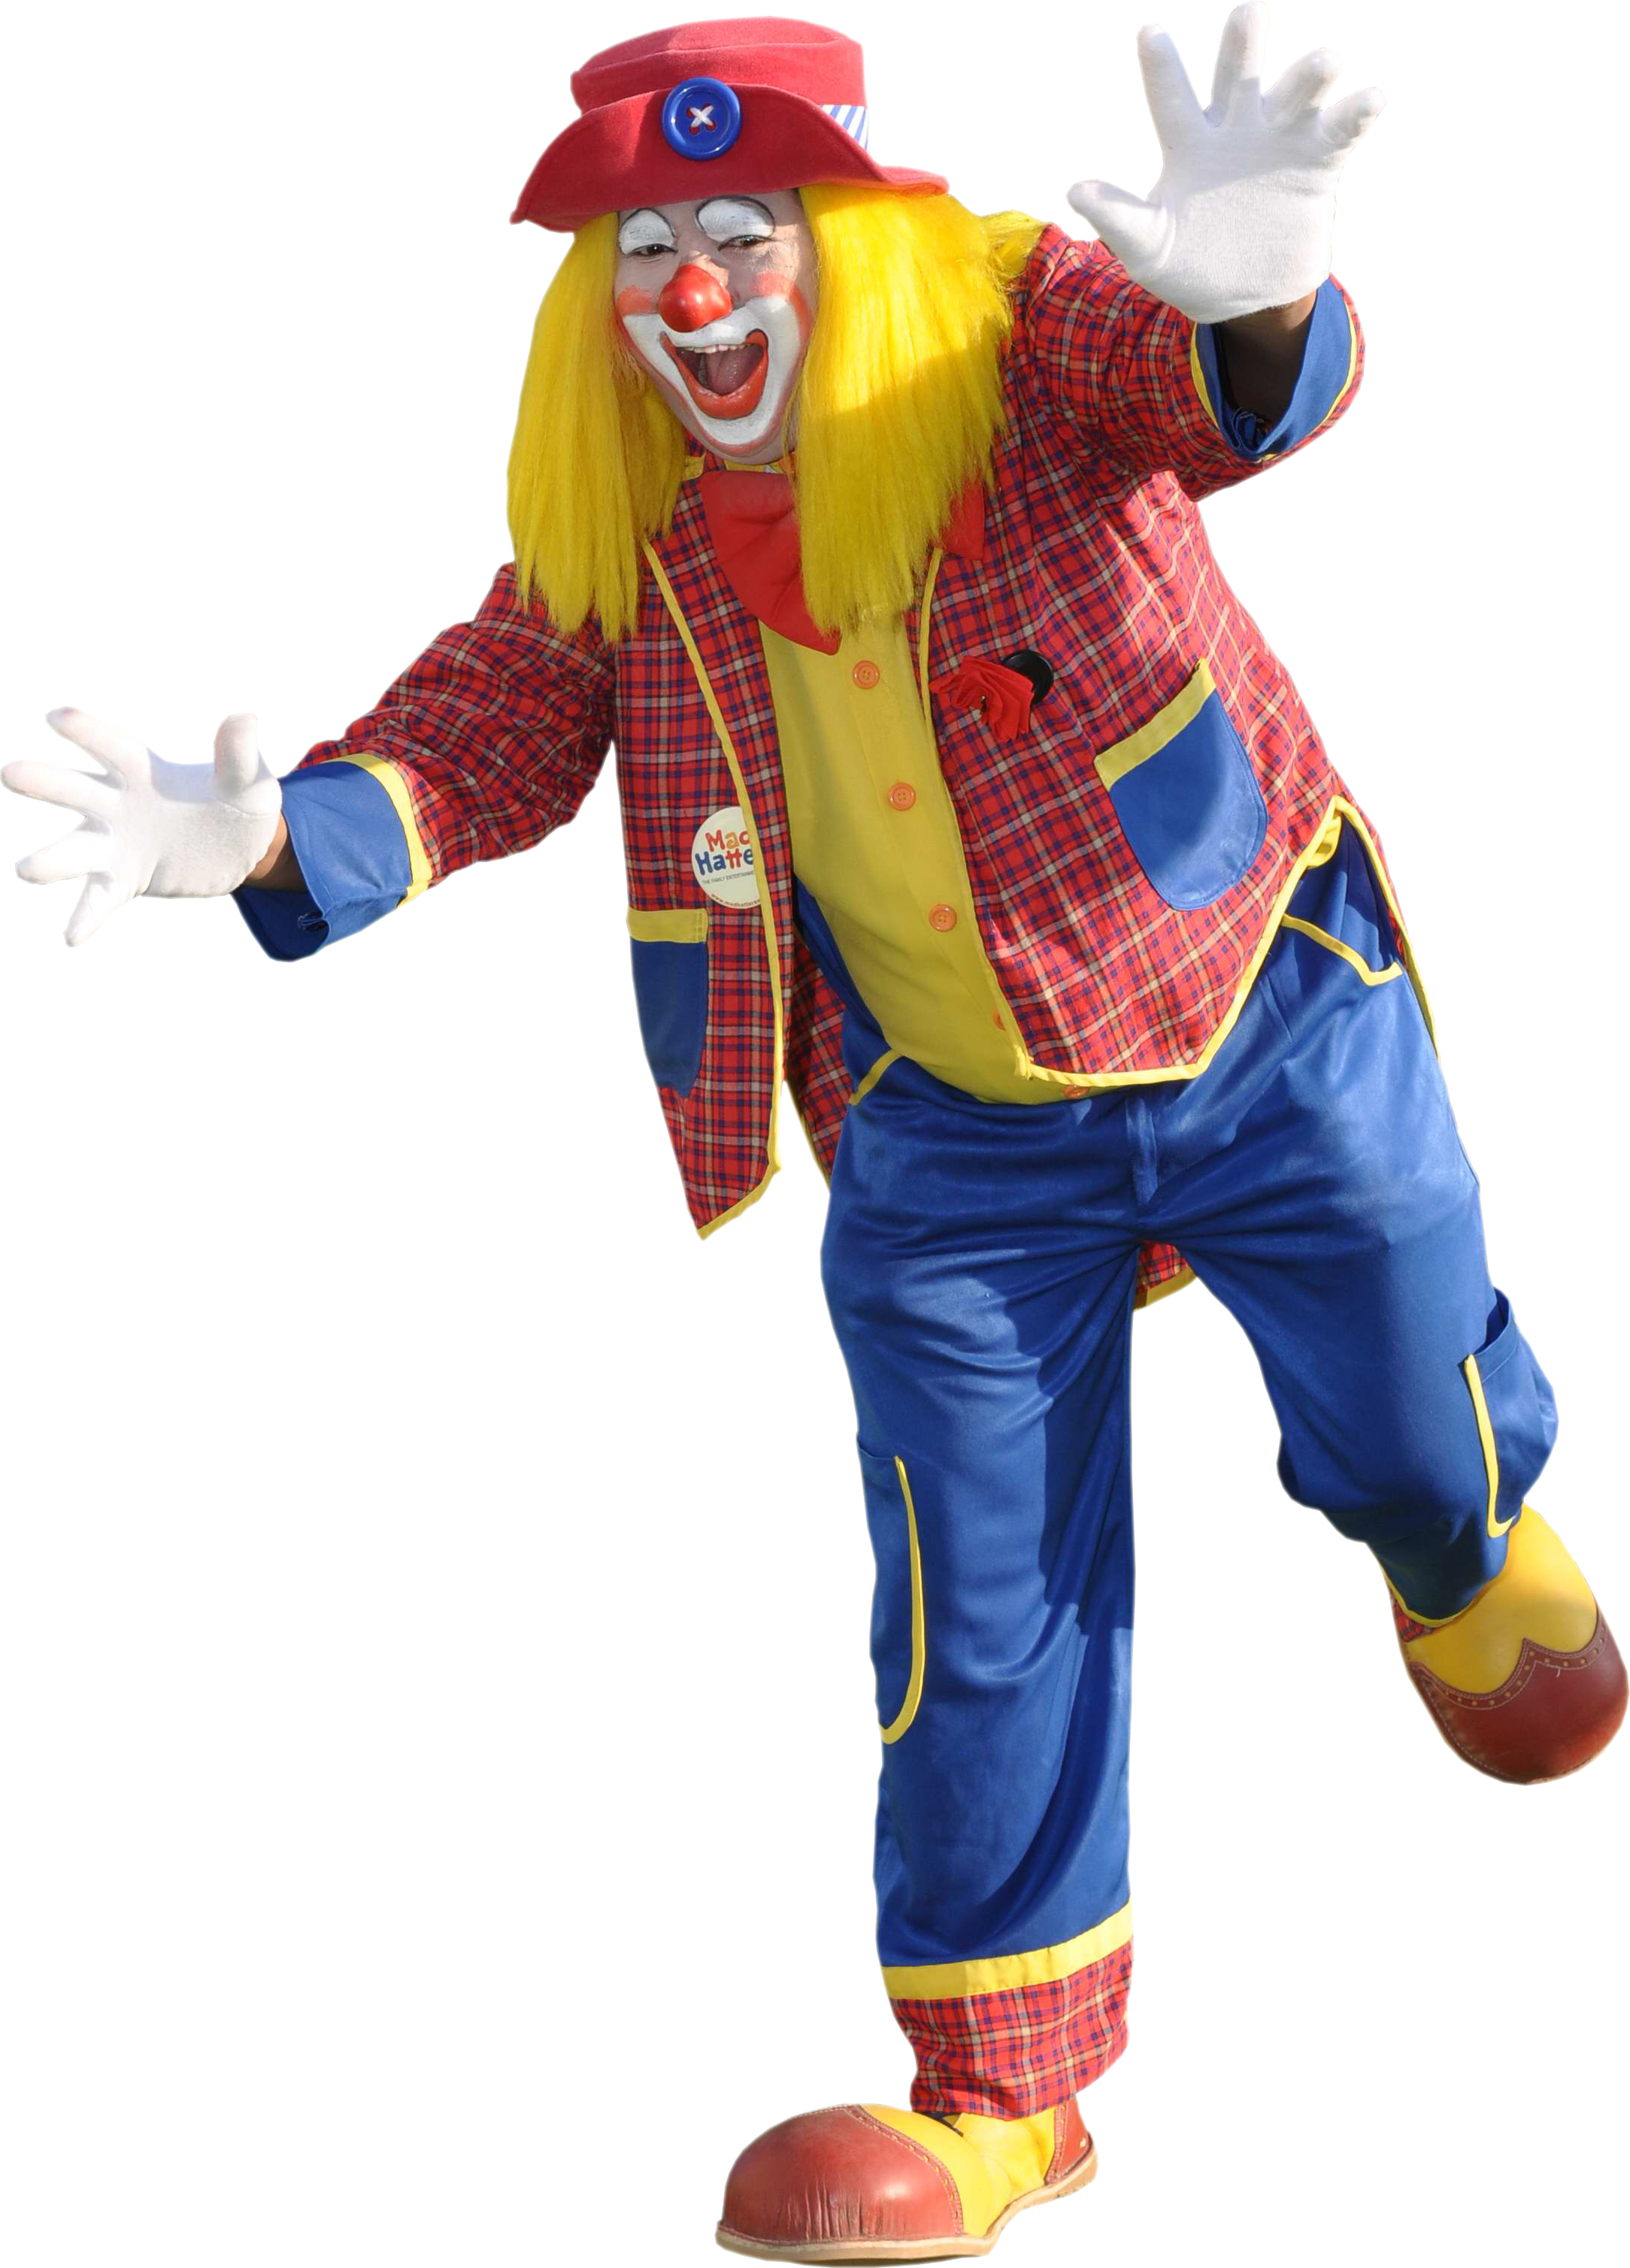 Circus clown png. Jumbo over networked martin